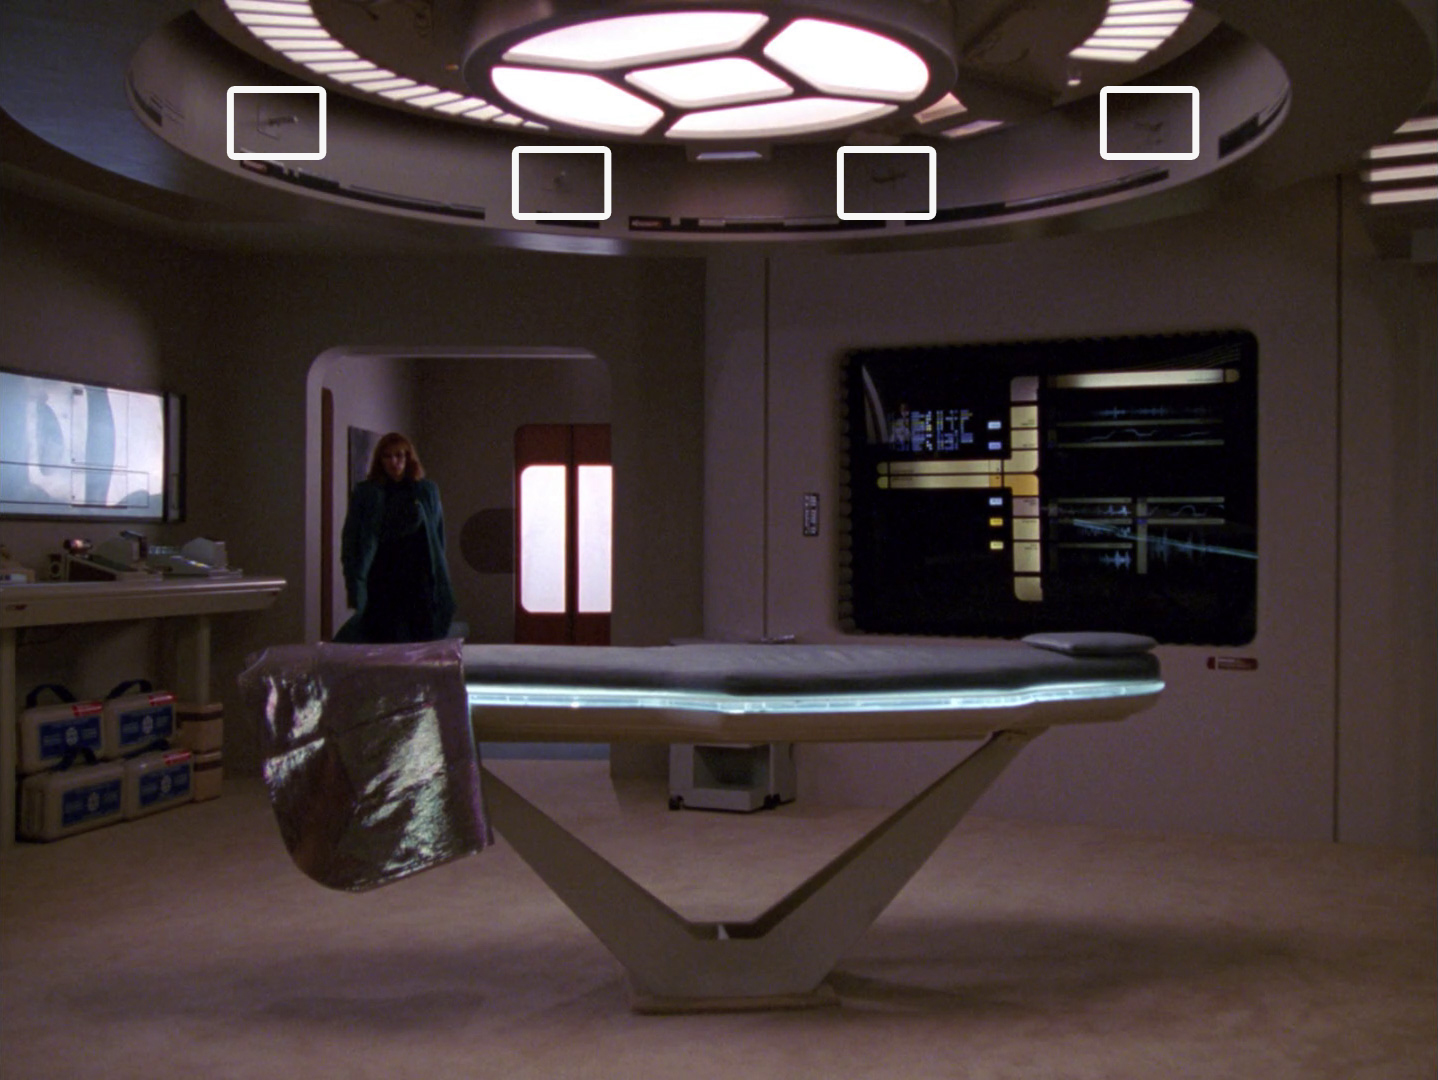 Star Trek: The Next Generation - Das Experiment (Remember Me) Blu-ray Screencap © CBS/Paramount